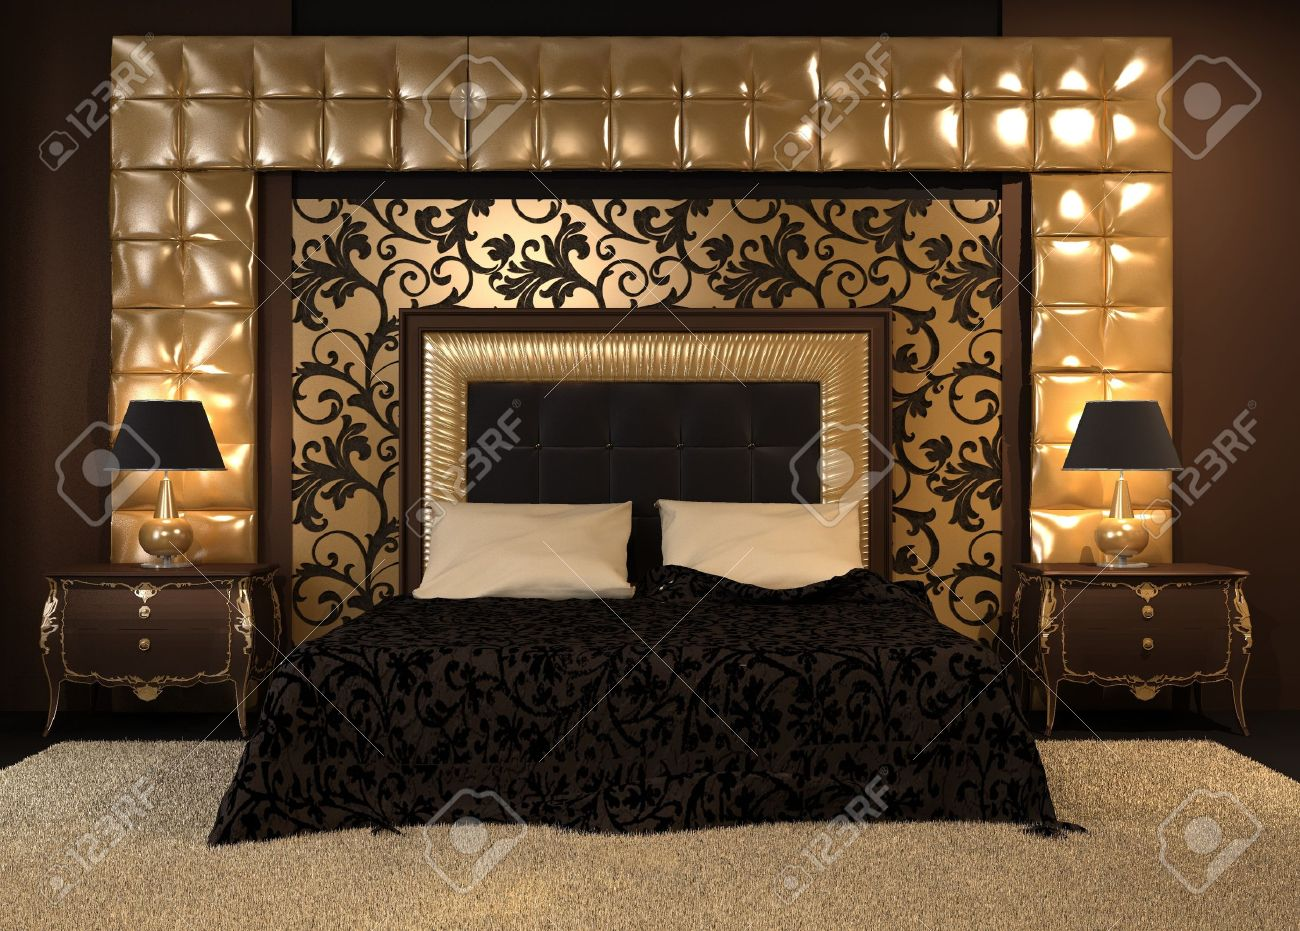 Double bed furniture design - Front Perspective Of Luxutiois Double Bed At Royal Apartment Modern Interior At The Hotel